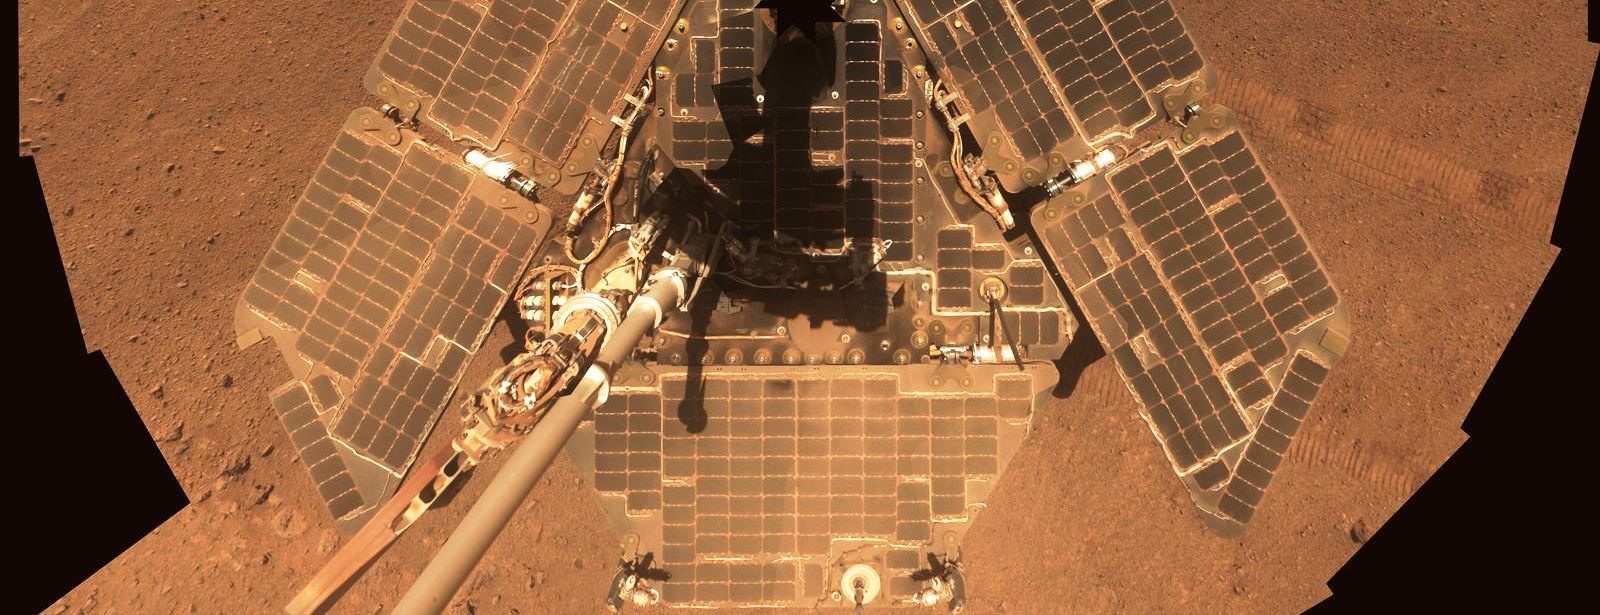 View of Opportunity solar panels in 2014. Image credit: NASA / JPL-Caltech / Cornell Univ./Arizona State Univ.